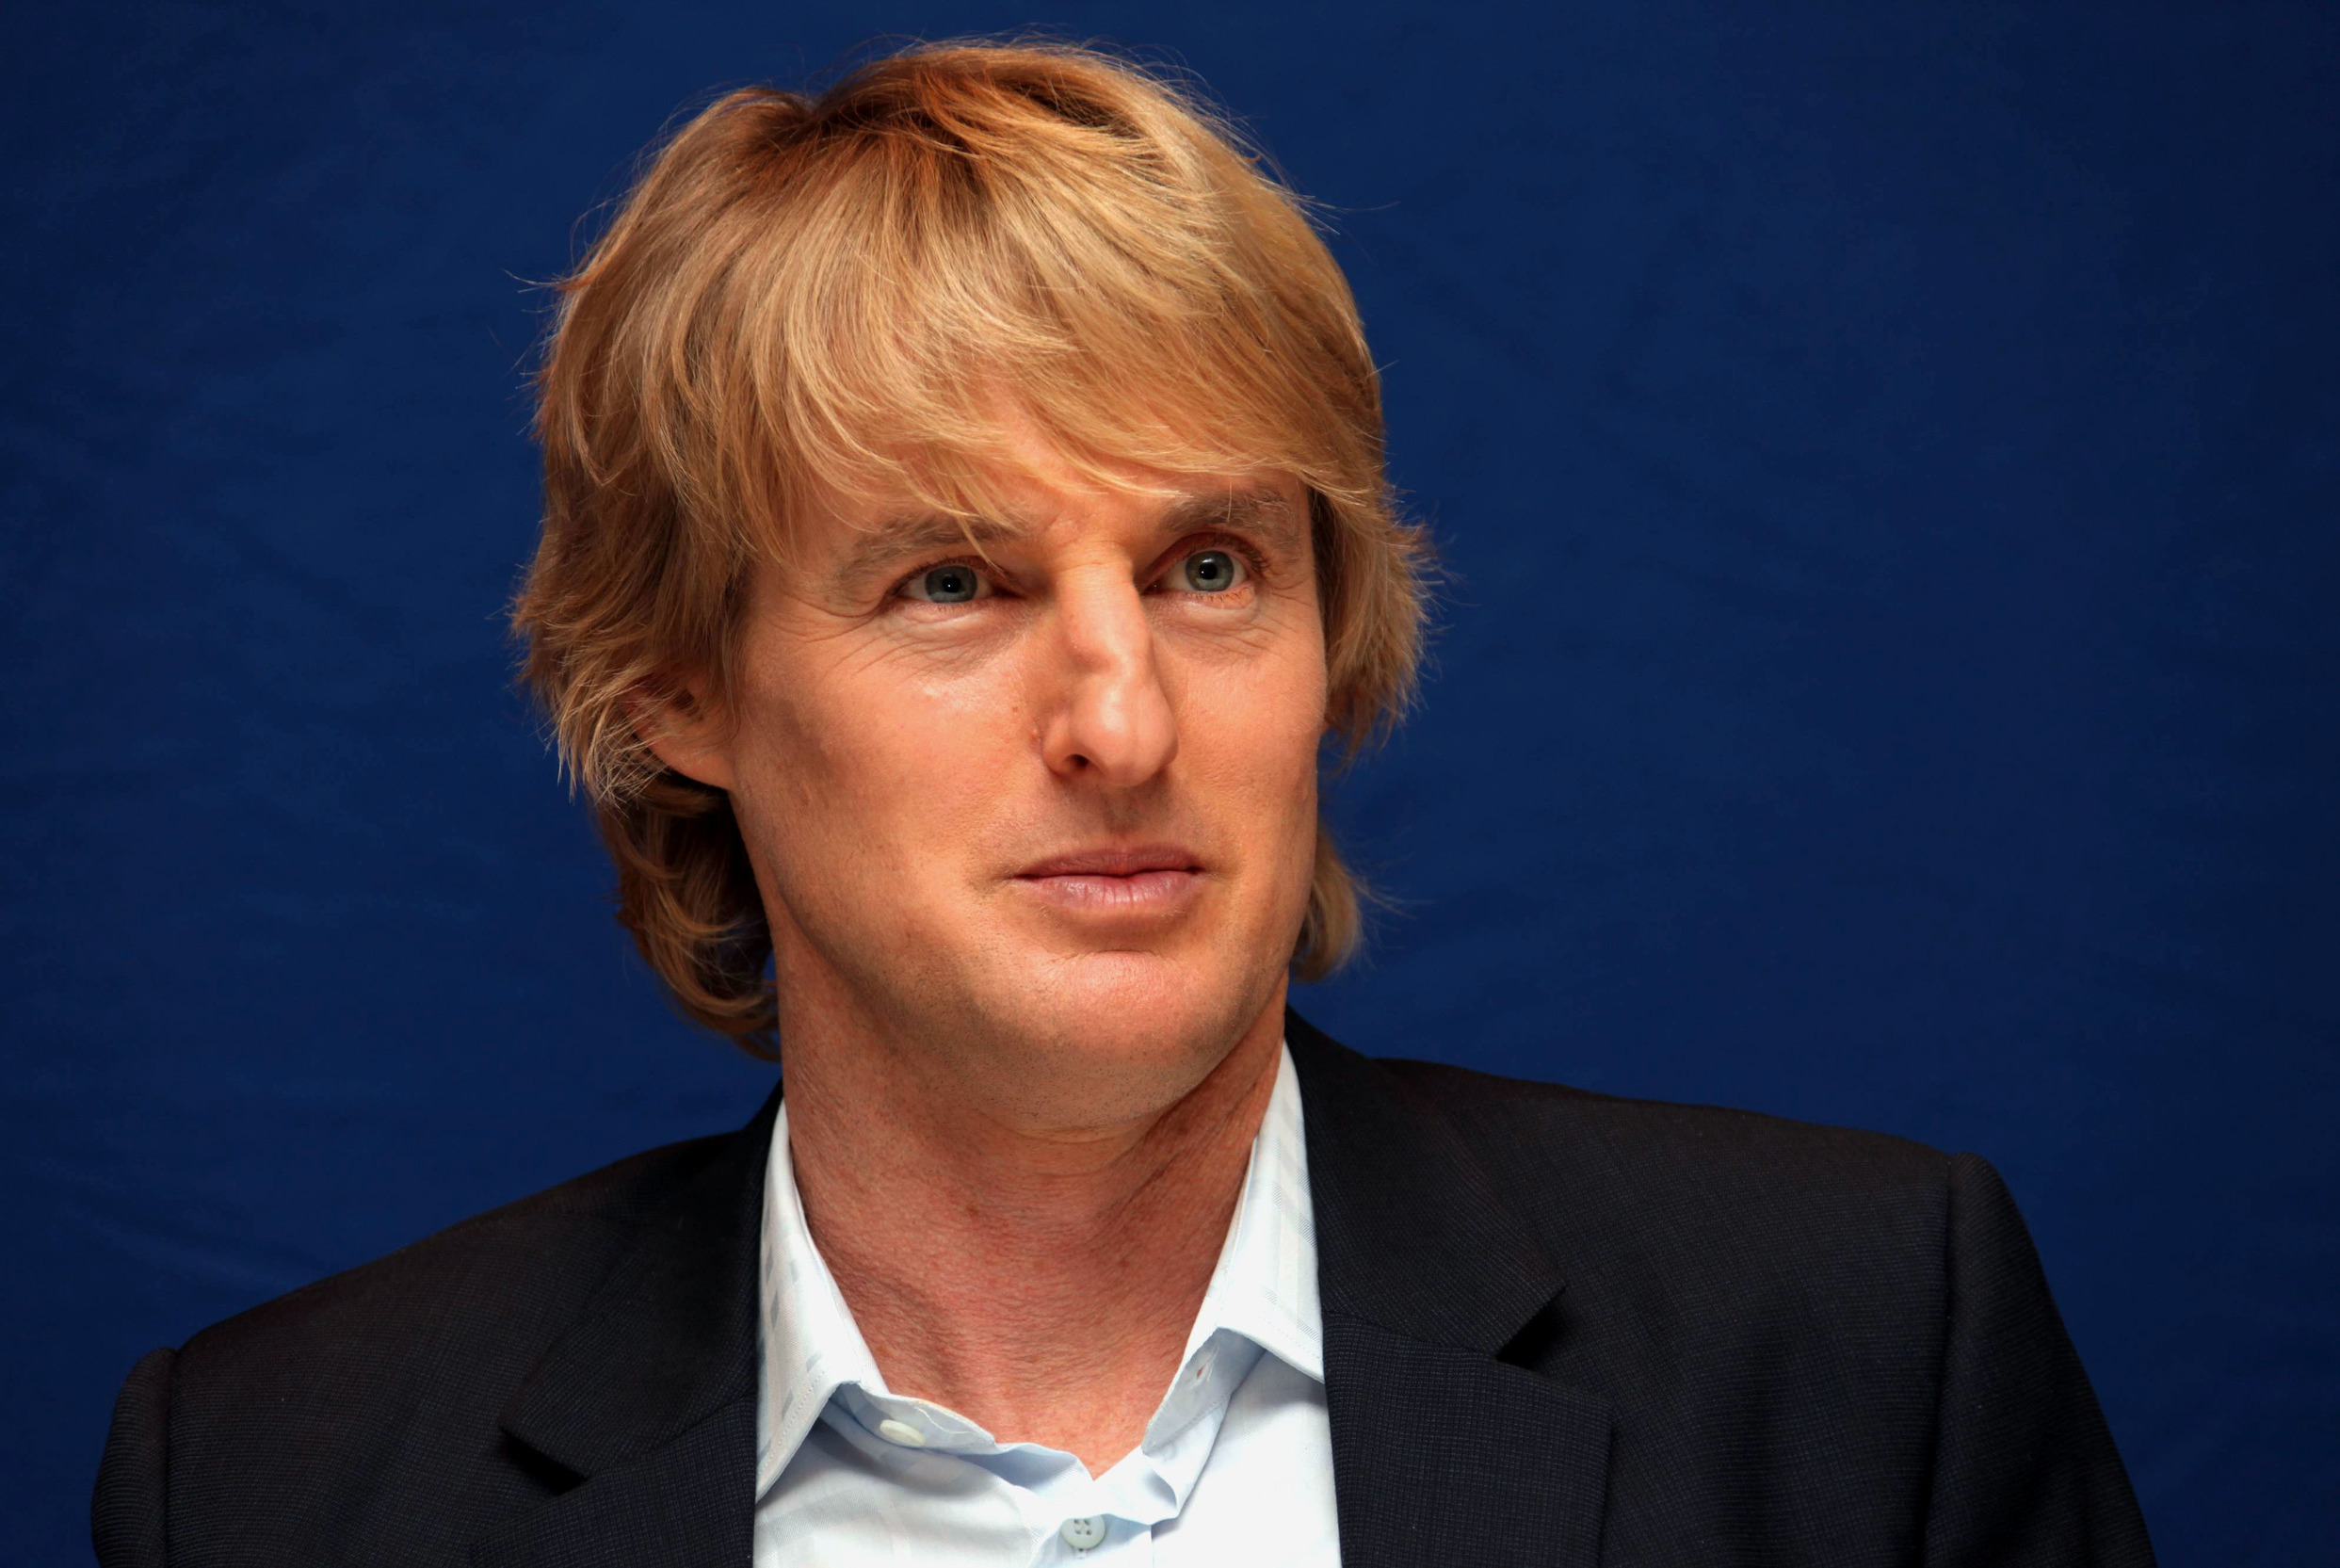 owen wilson deathowen wilson фильмы, owen wilson wow, owen wilson movies, owen wilson instagram, owen wilson films, owen wilson height, owen wilson filmleri, owen wilson skate, owen wilson imdb, owen wilson death, owen wilson no escape, owen wilson turtle, owen wilson brother actor, owen wilson movies list, owen wilson natal chart, owen wilson jackie chan, owen wilson zoolander, owen wilson jim carrey movie, owen wilson wiki, owen wilson wikipedia